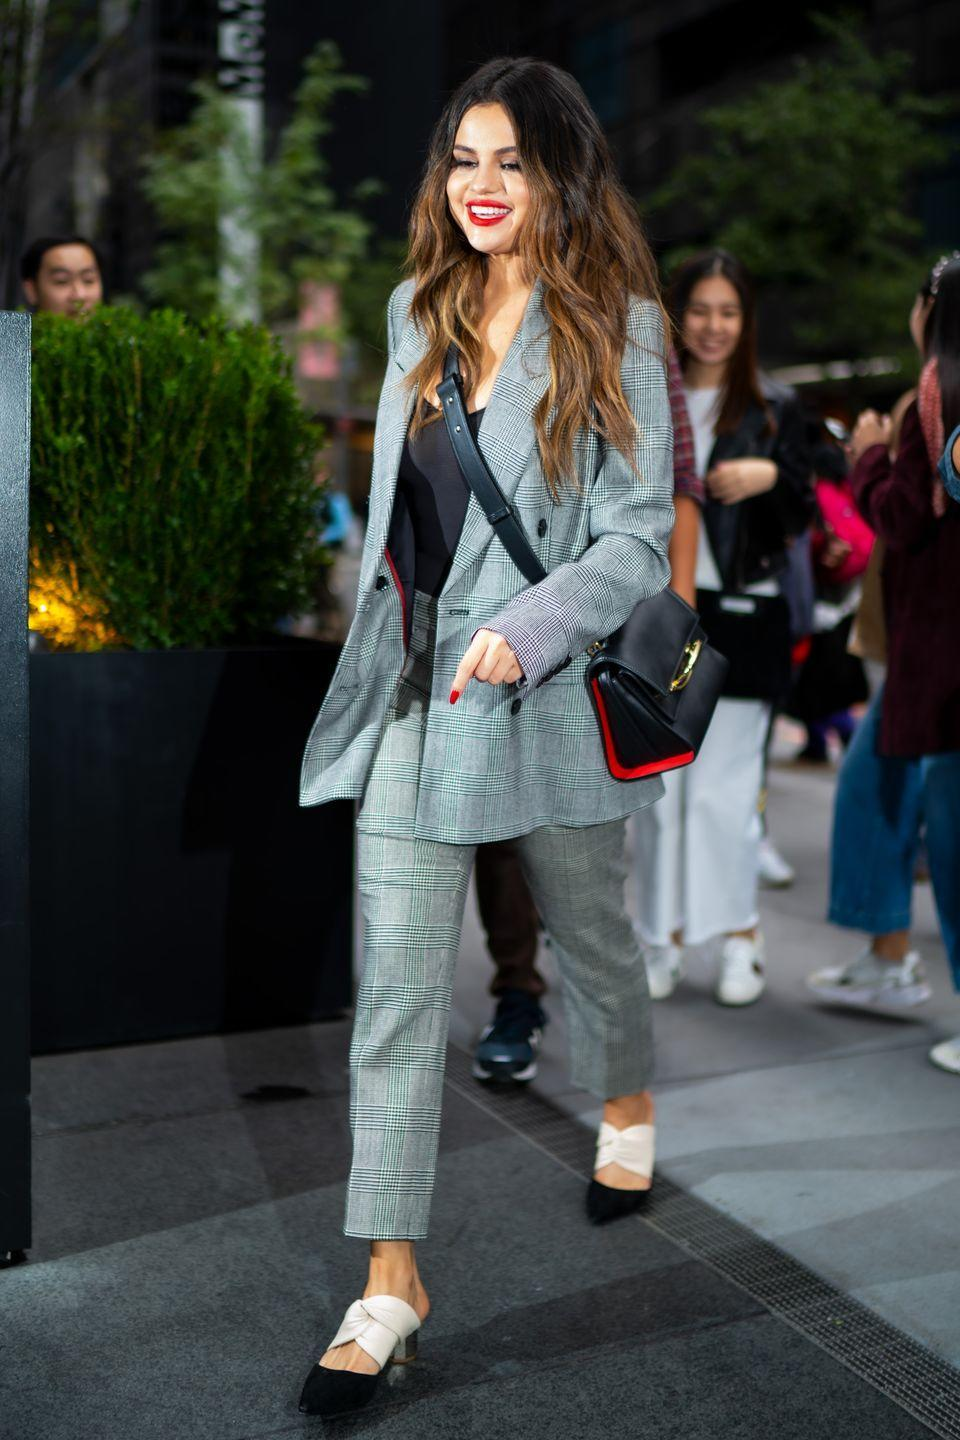 "<p>Seen walking through midtown Manhattan in a Frame suit while carrying the <a href=""https://www.elle.com/fashion/shopping/a30122002/alexander-mcqueen-story-bag/"" rel=""nofollow noopener"" target=""_blank"" data-ylk=""slk:popular 'Story' bag"" class=""link rapid-noclick-resp"">popular 'Story' bag</a> by Alexander McQueen.</p>"